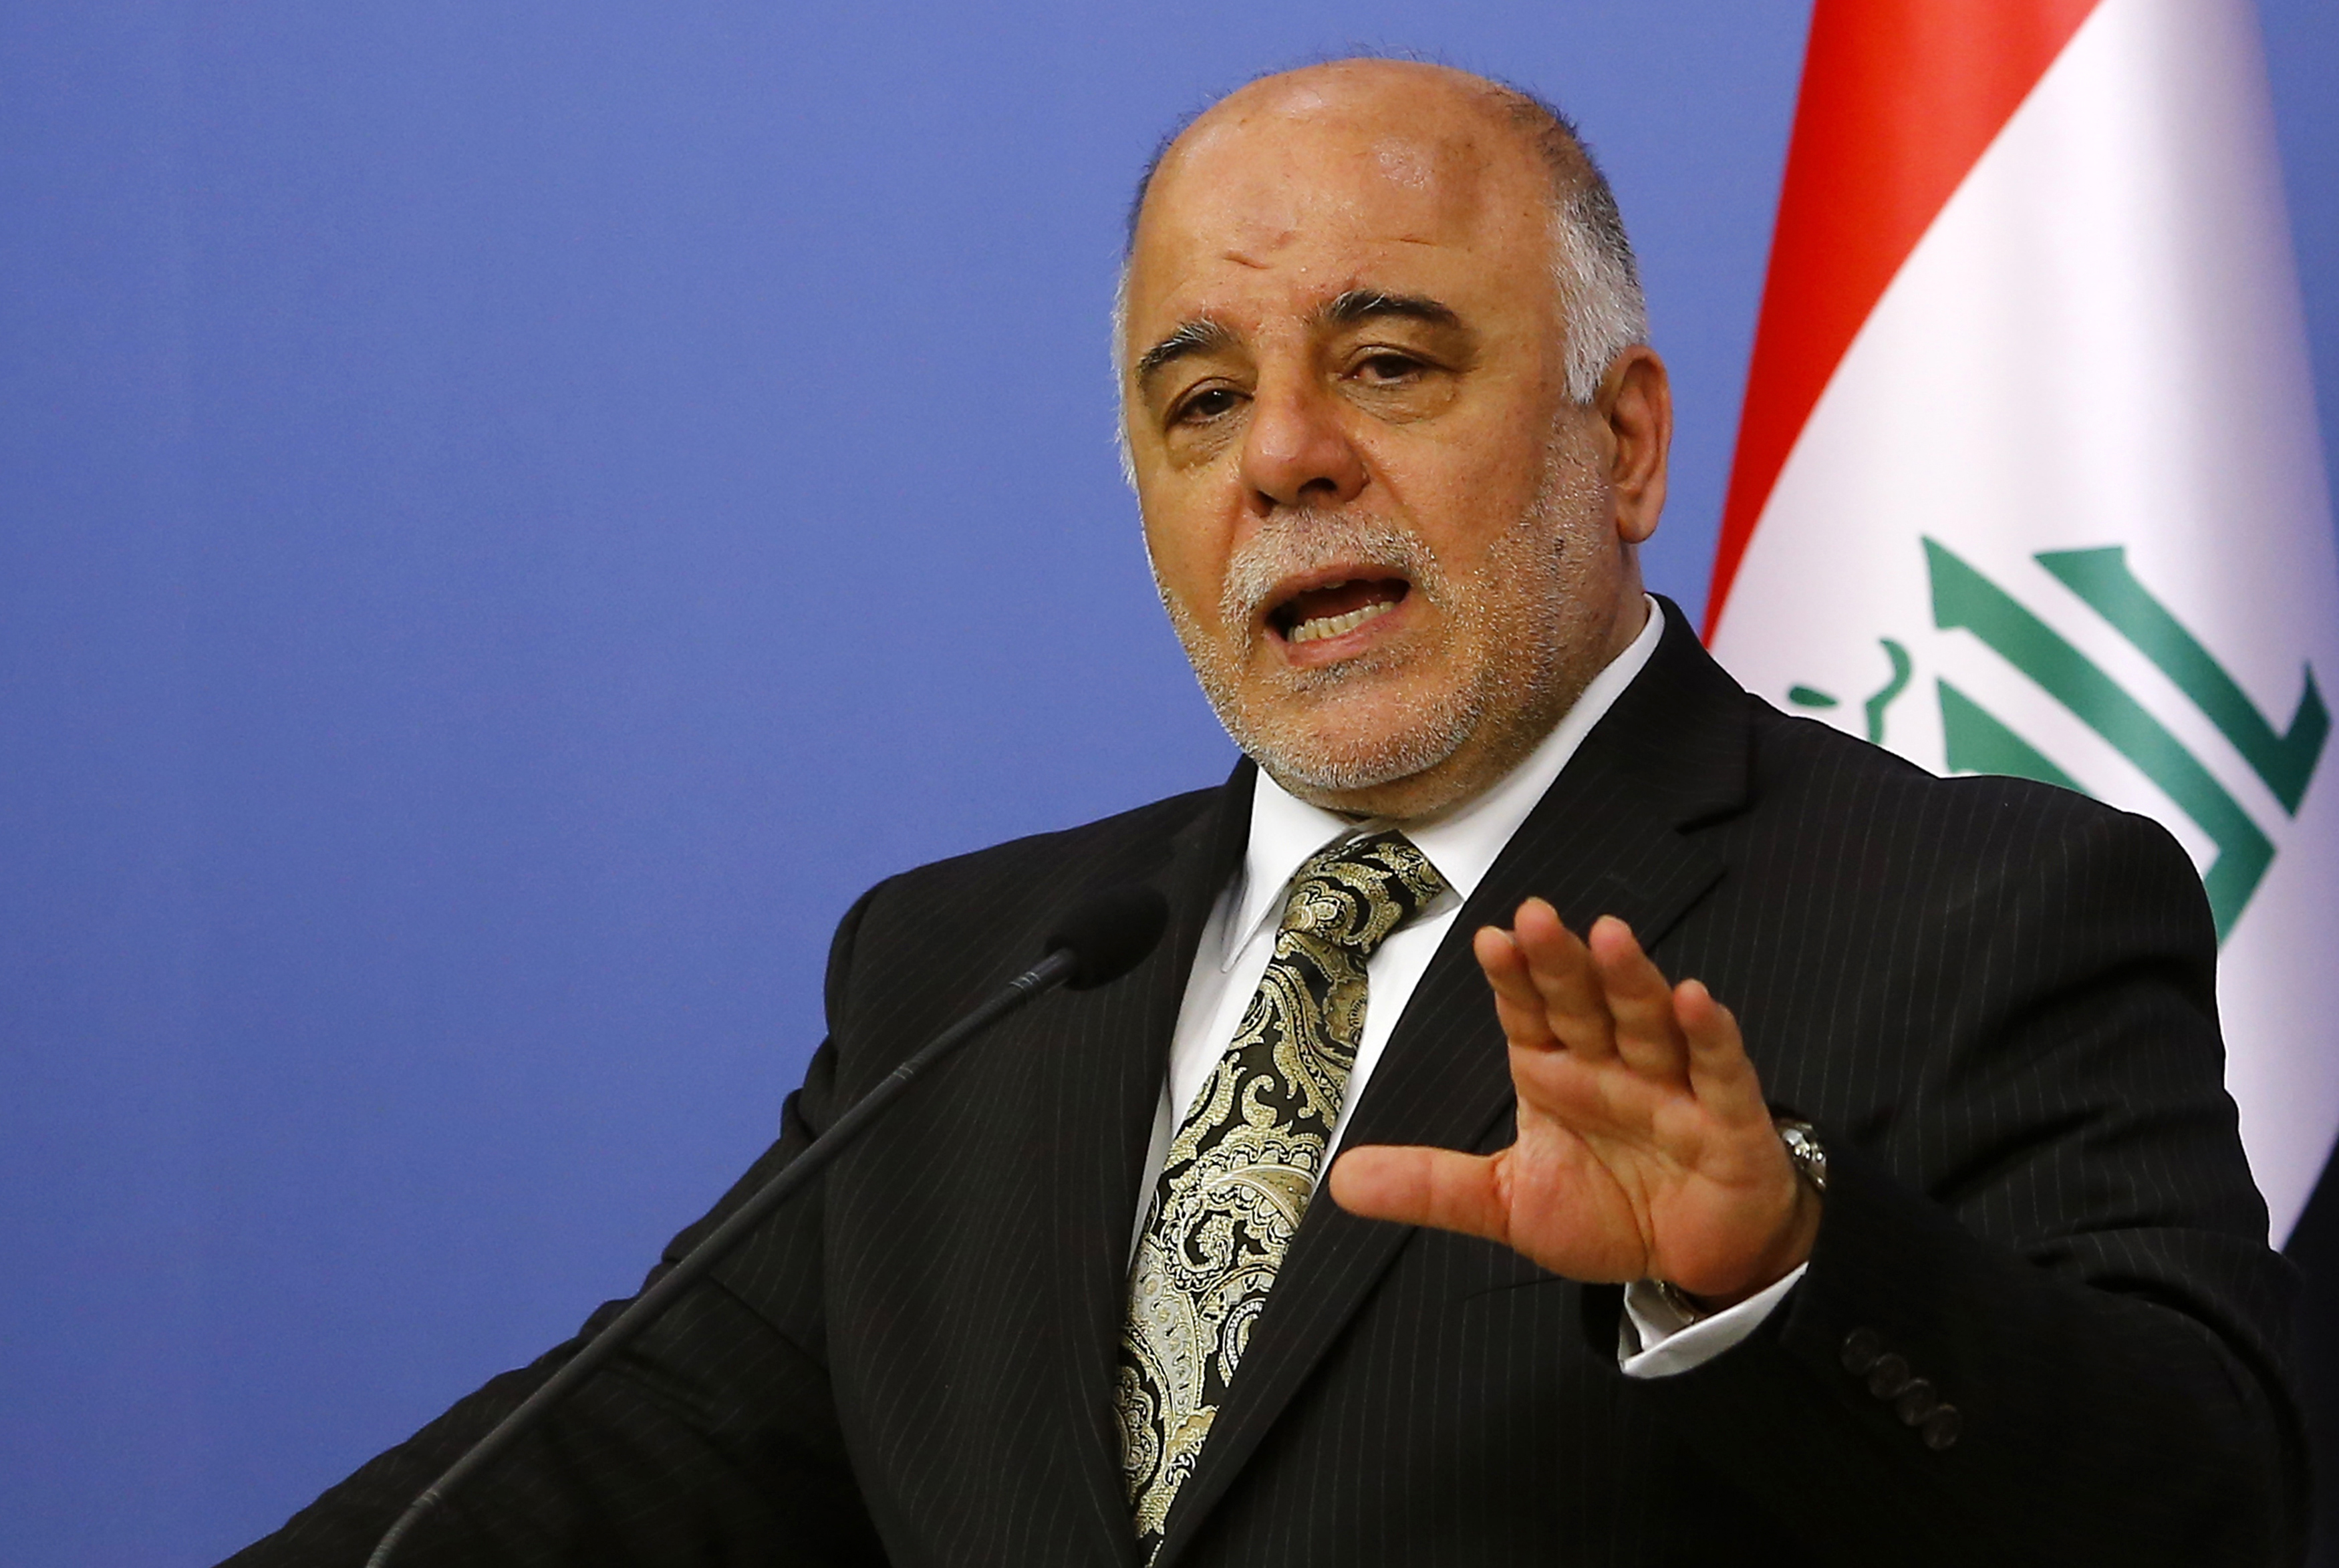 Iraqi Prime Minister Haider al-Abadi addresses the media in Ankara December 25, 2014. REUTERS/Umit Bektas (TURKEY - Tags: POLITICS) - RTR4J8X5